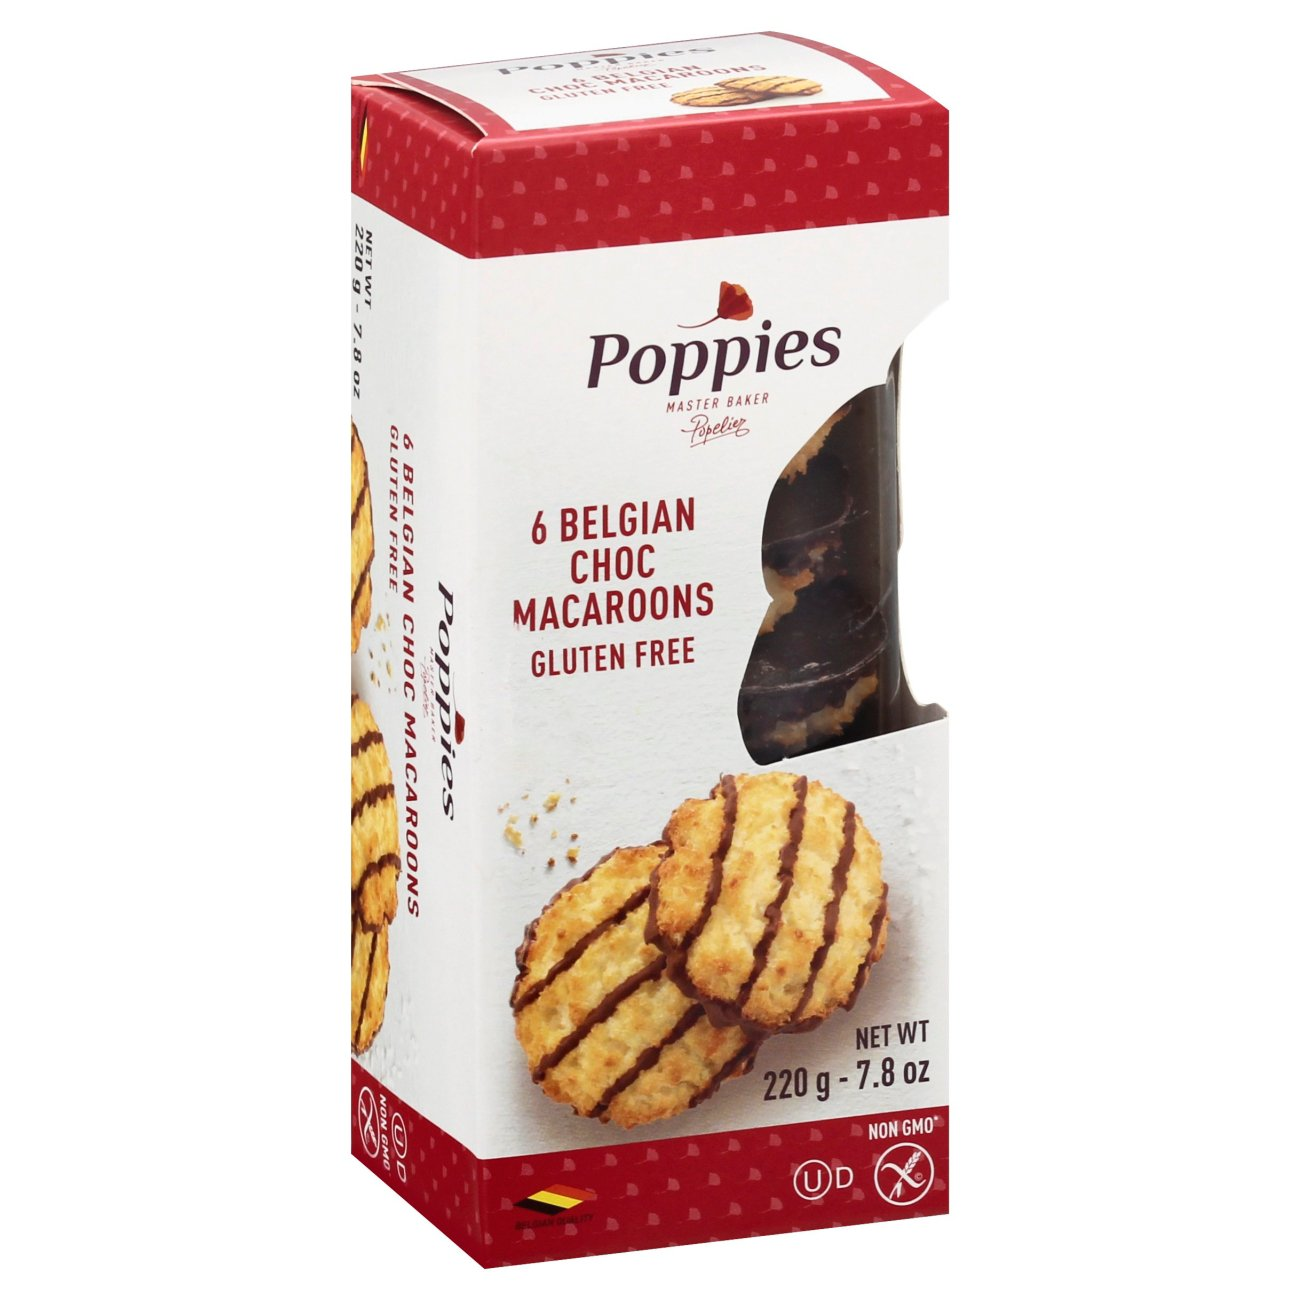 Poppies Chocolate Drizzle Coconut Macaroon Cookies Shop Cookies At H E B